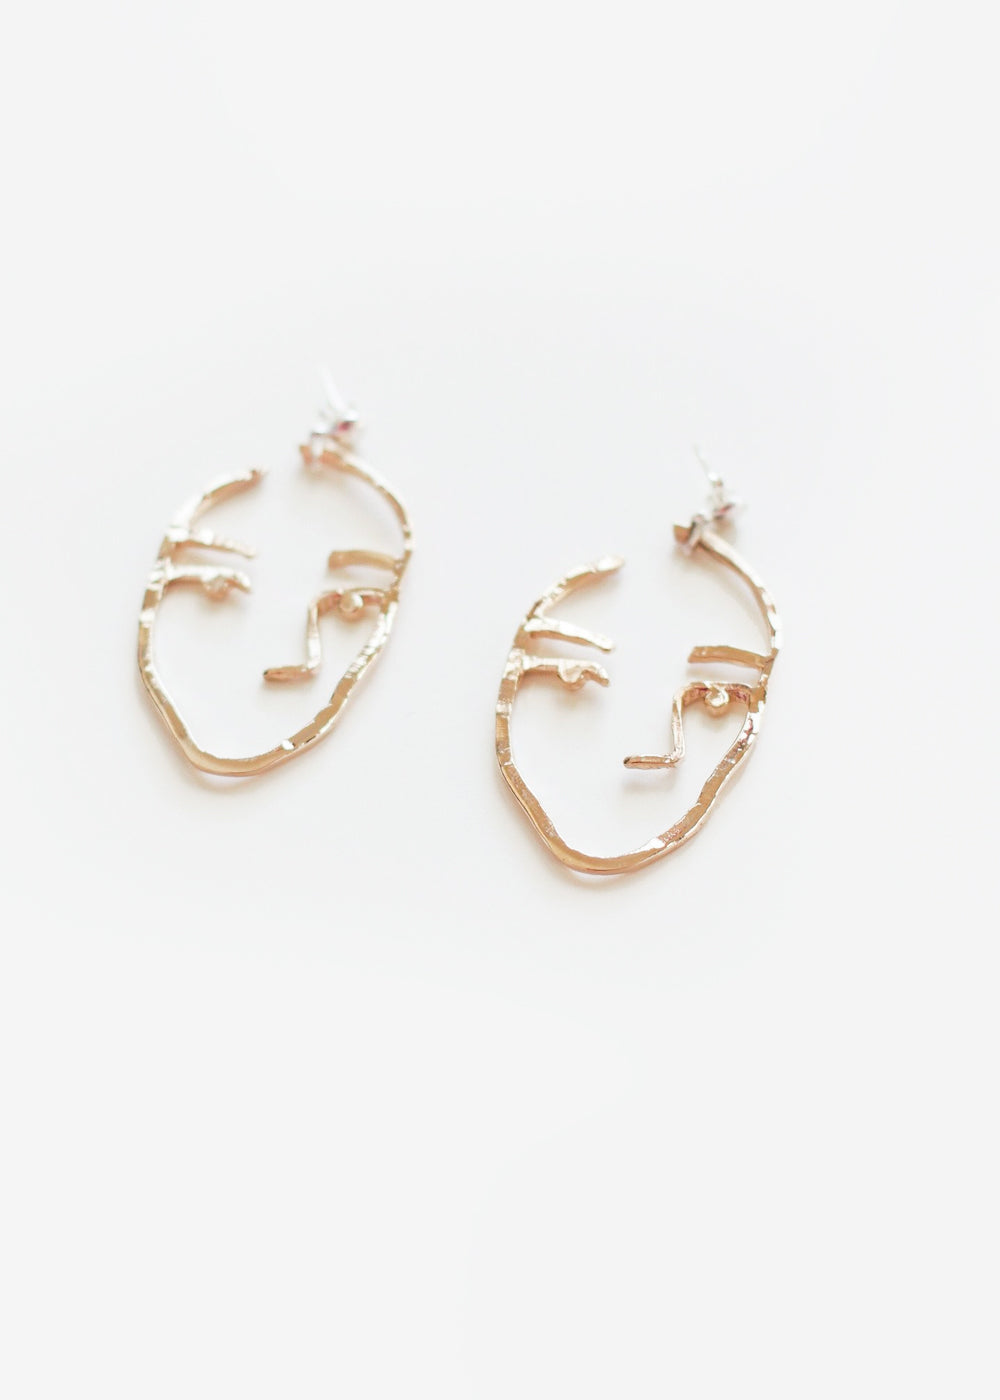 Open House Projects Sister Earrings — Shop sustainable fashion and slow fashion at New Classics Studios